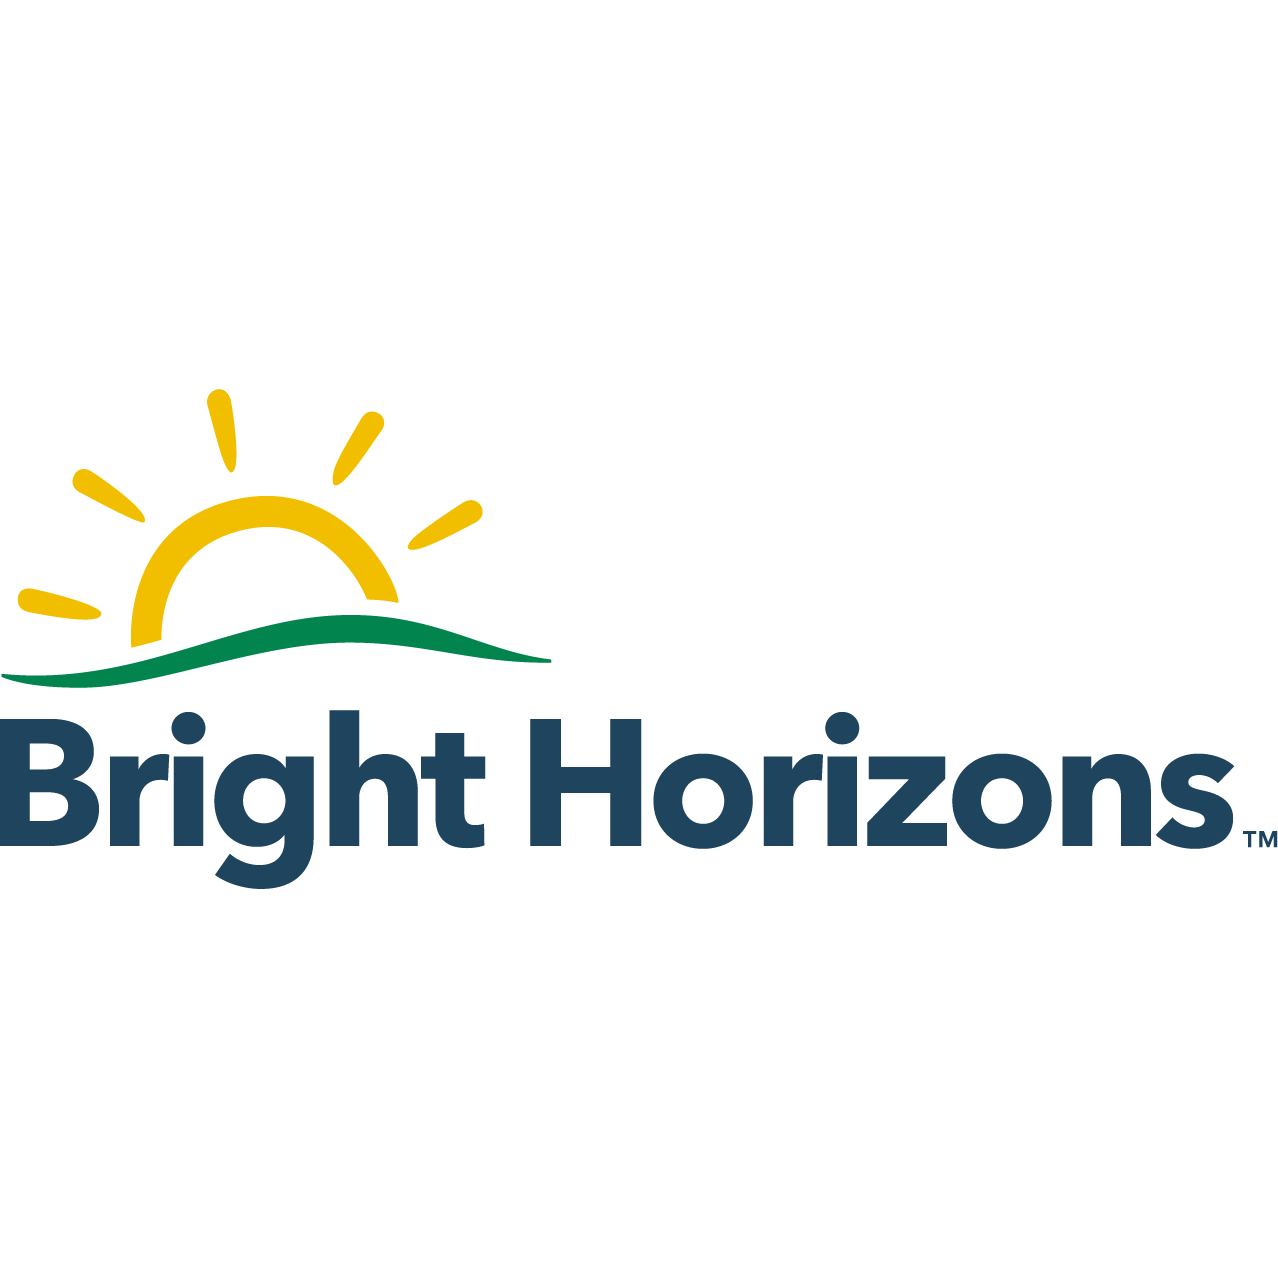 Bright Horizons Tooting Looking Glass Day Nursery and Preschool - Tooting Bec, London SW17 6AT - 03339 203081 | ShowMeLocal.com